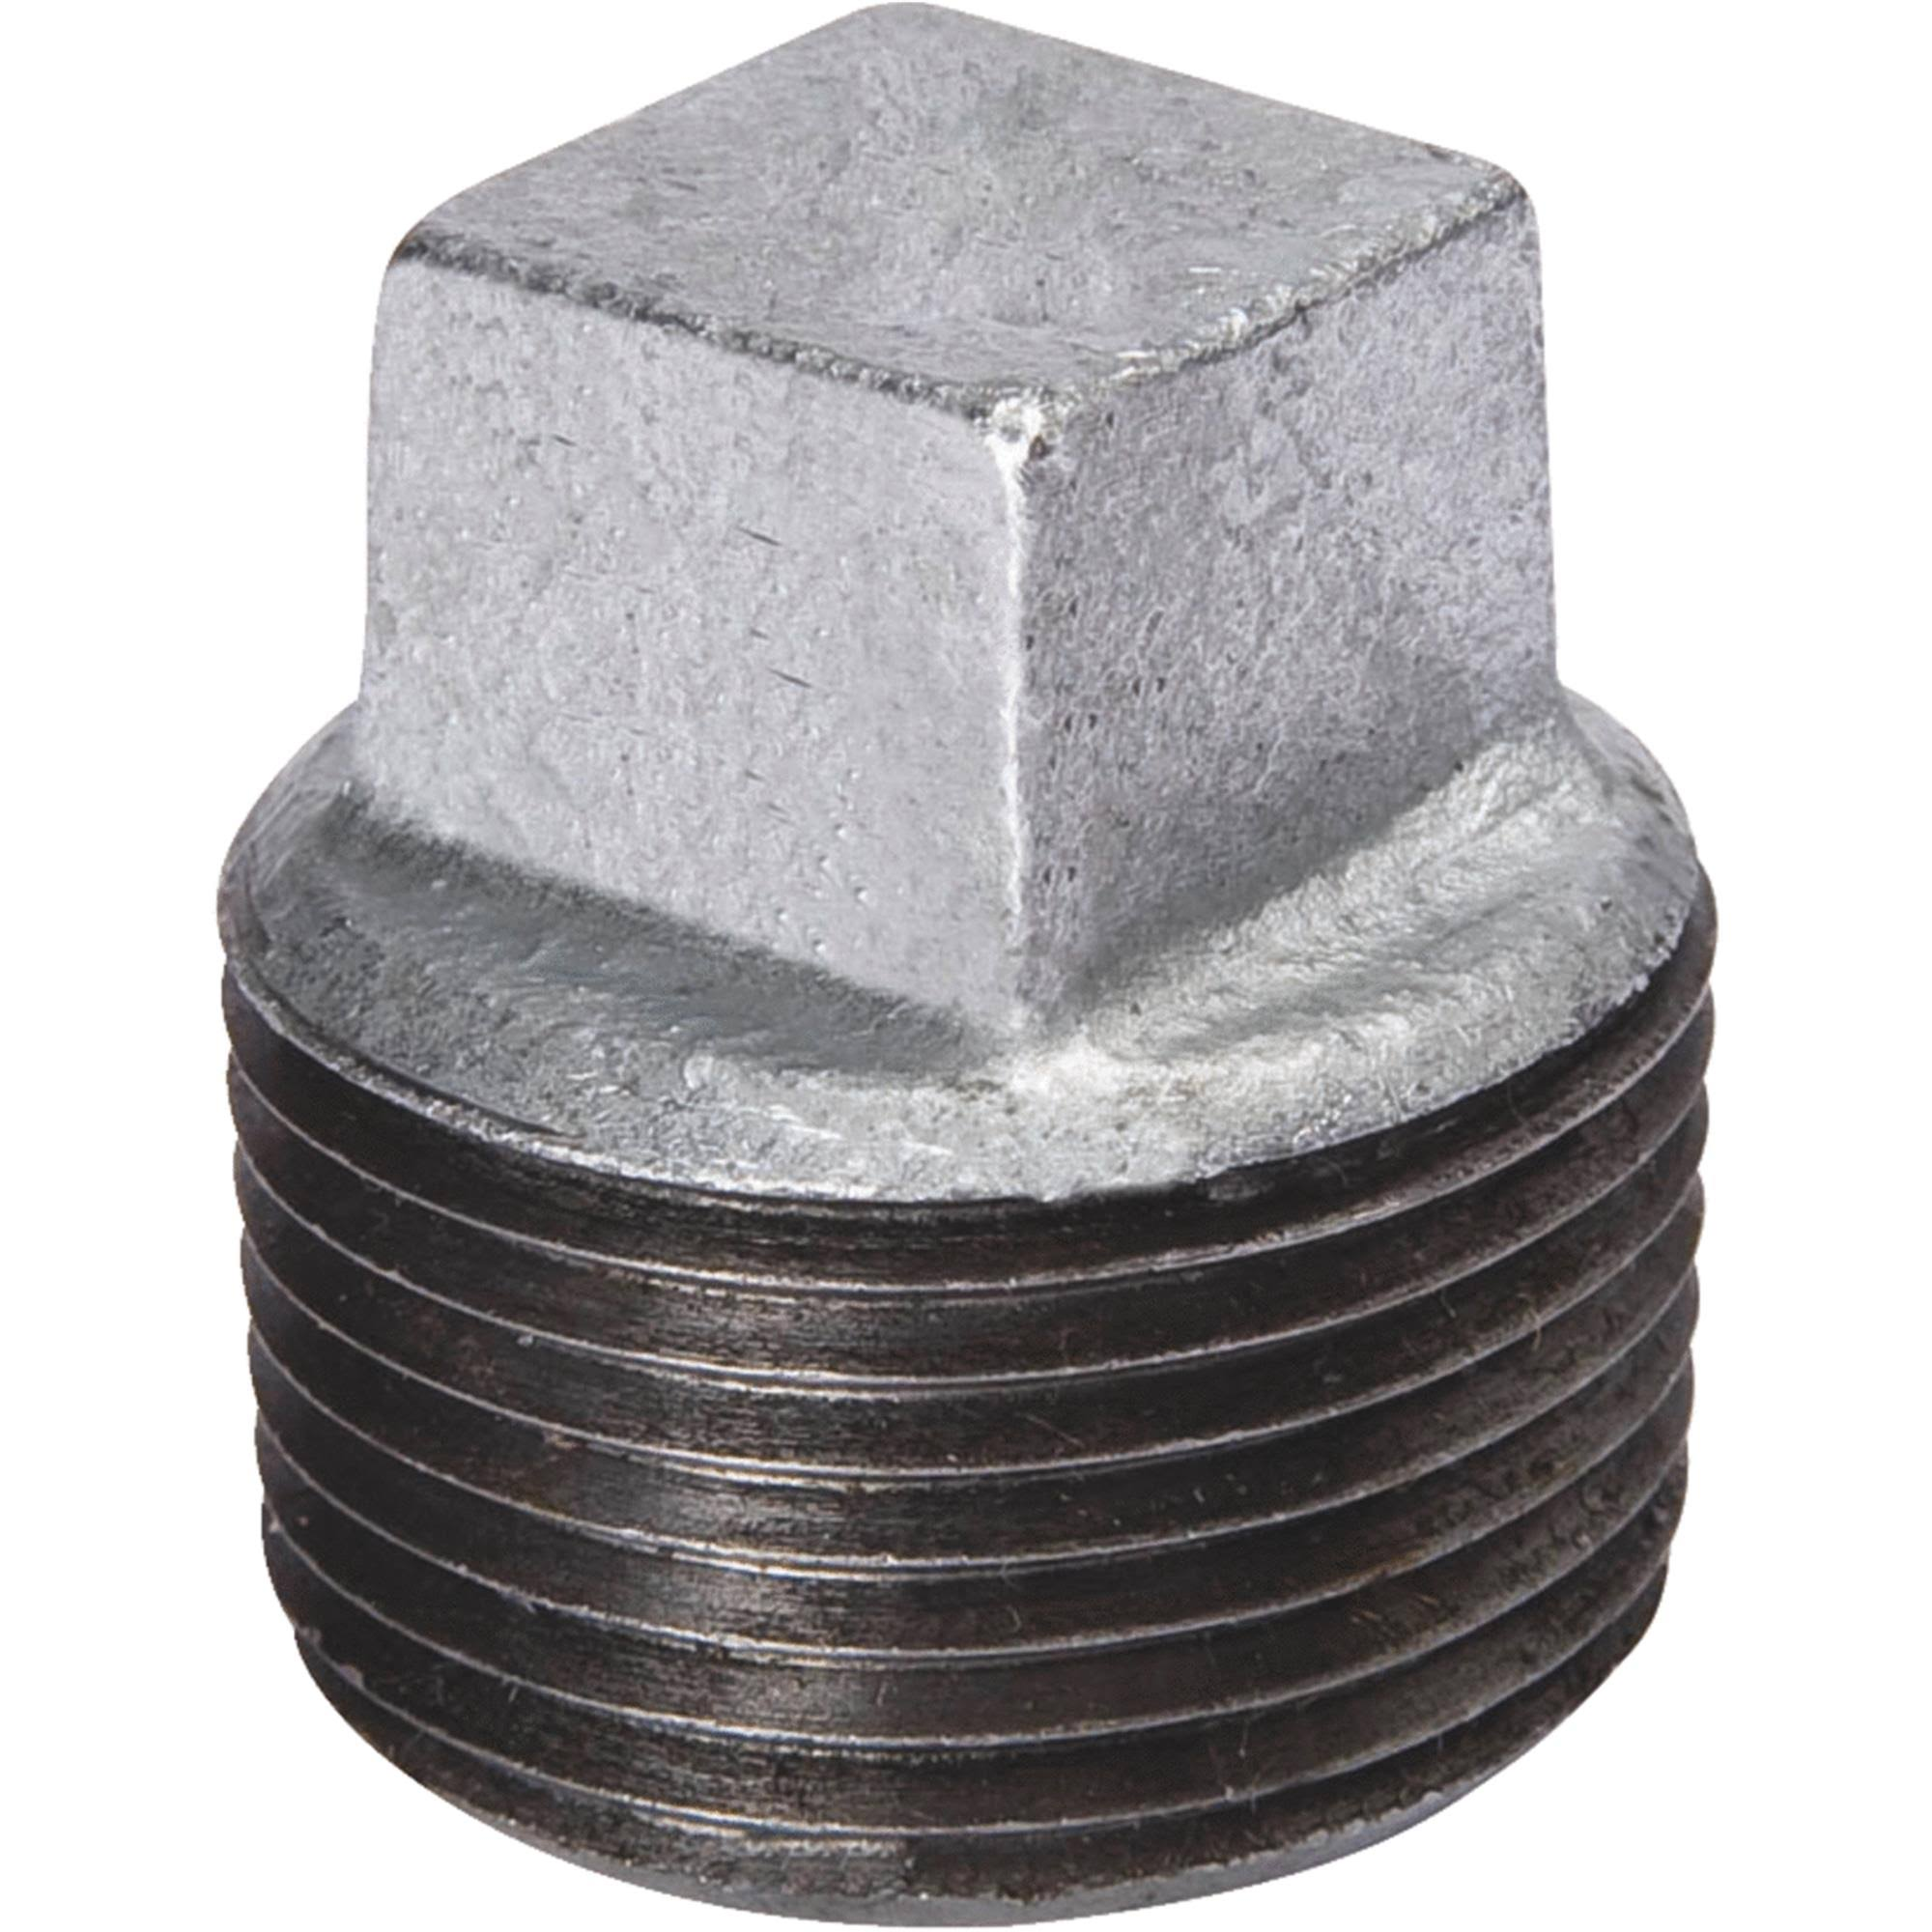 B&K 1in FIP Malleable Iron Galvanized Plug